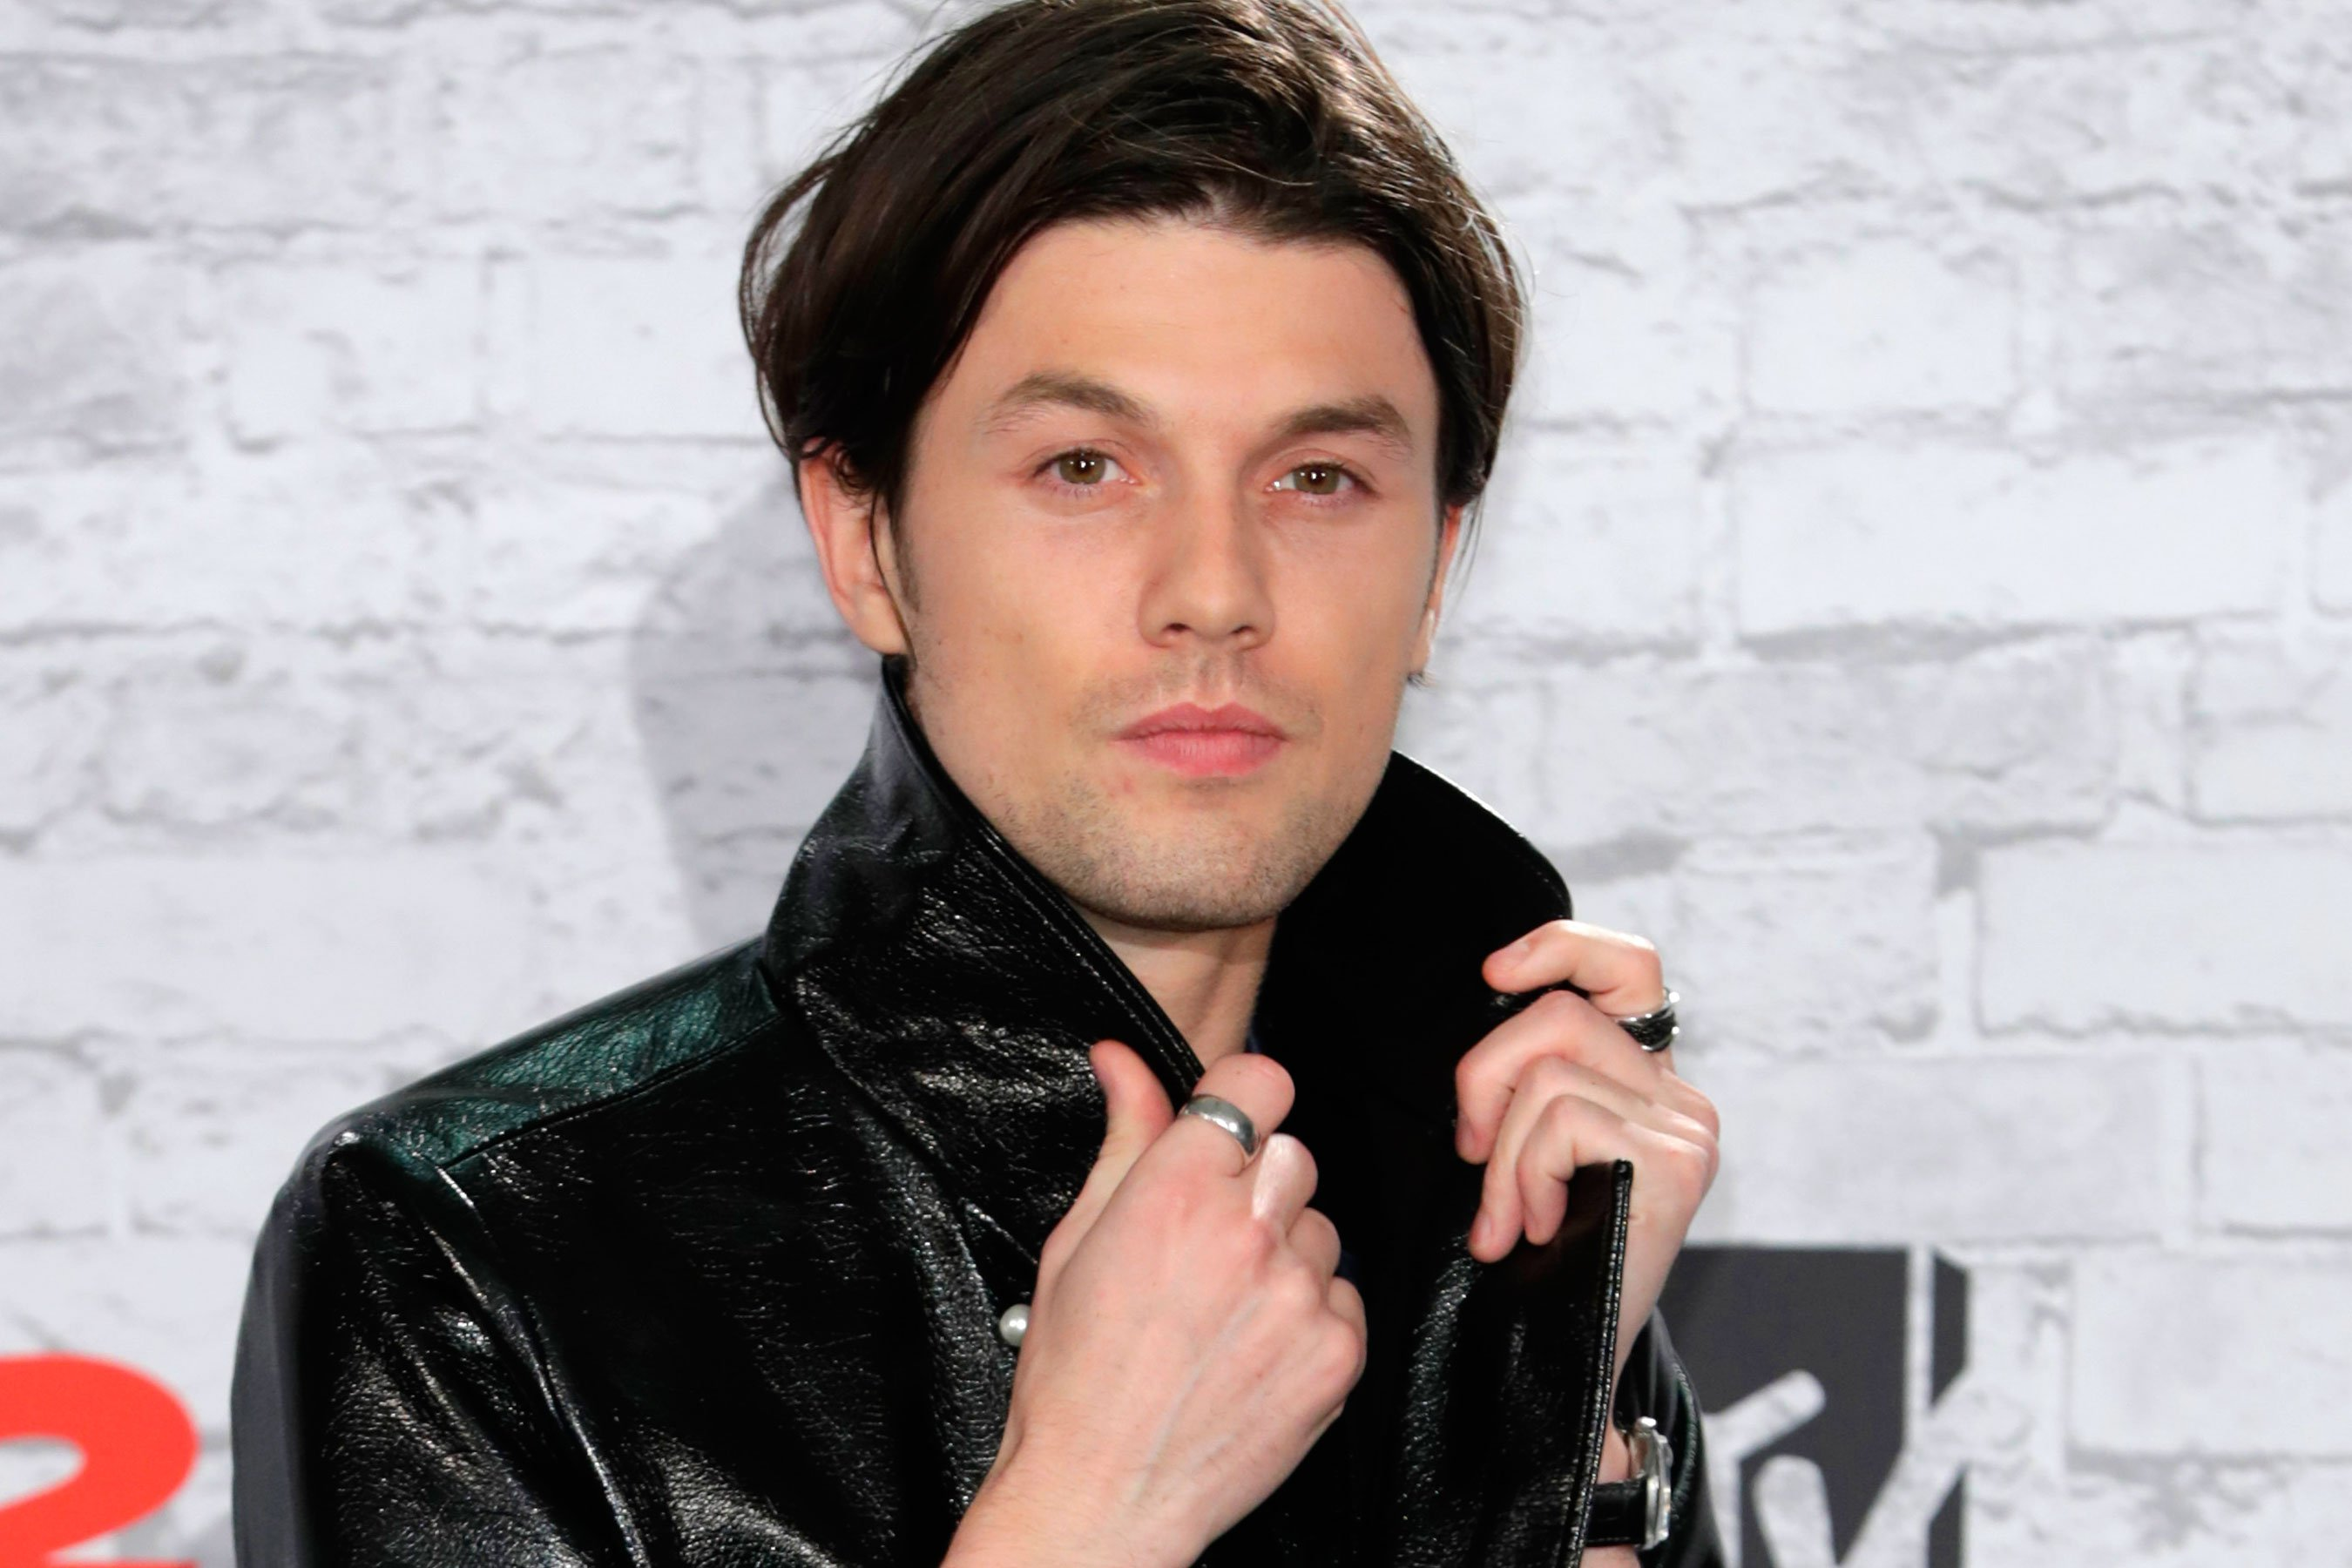 James Bay's new album Electric Light is available now for pre-order